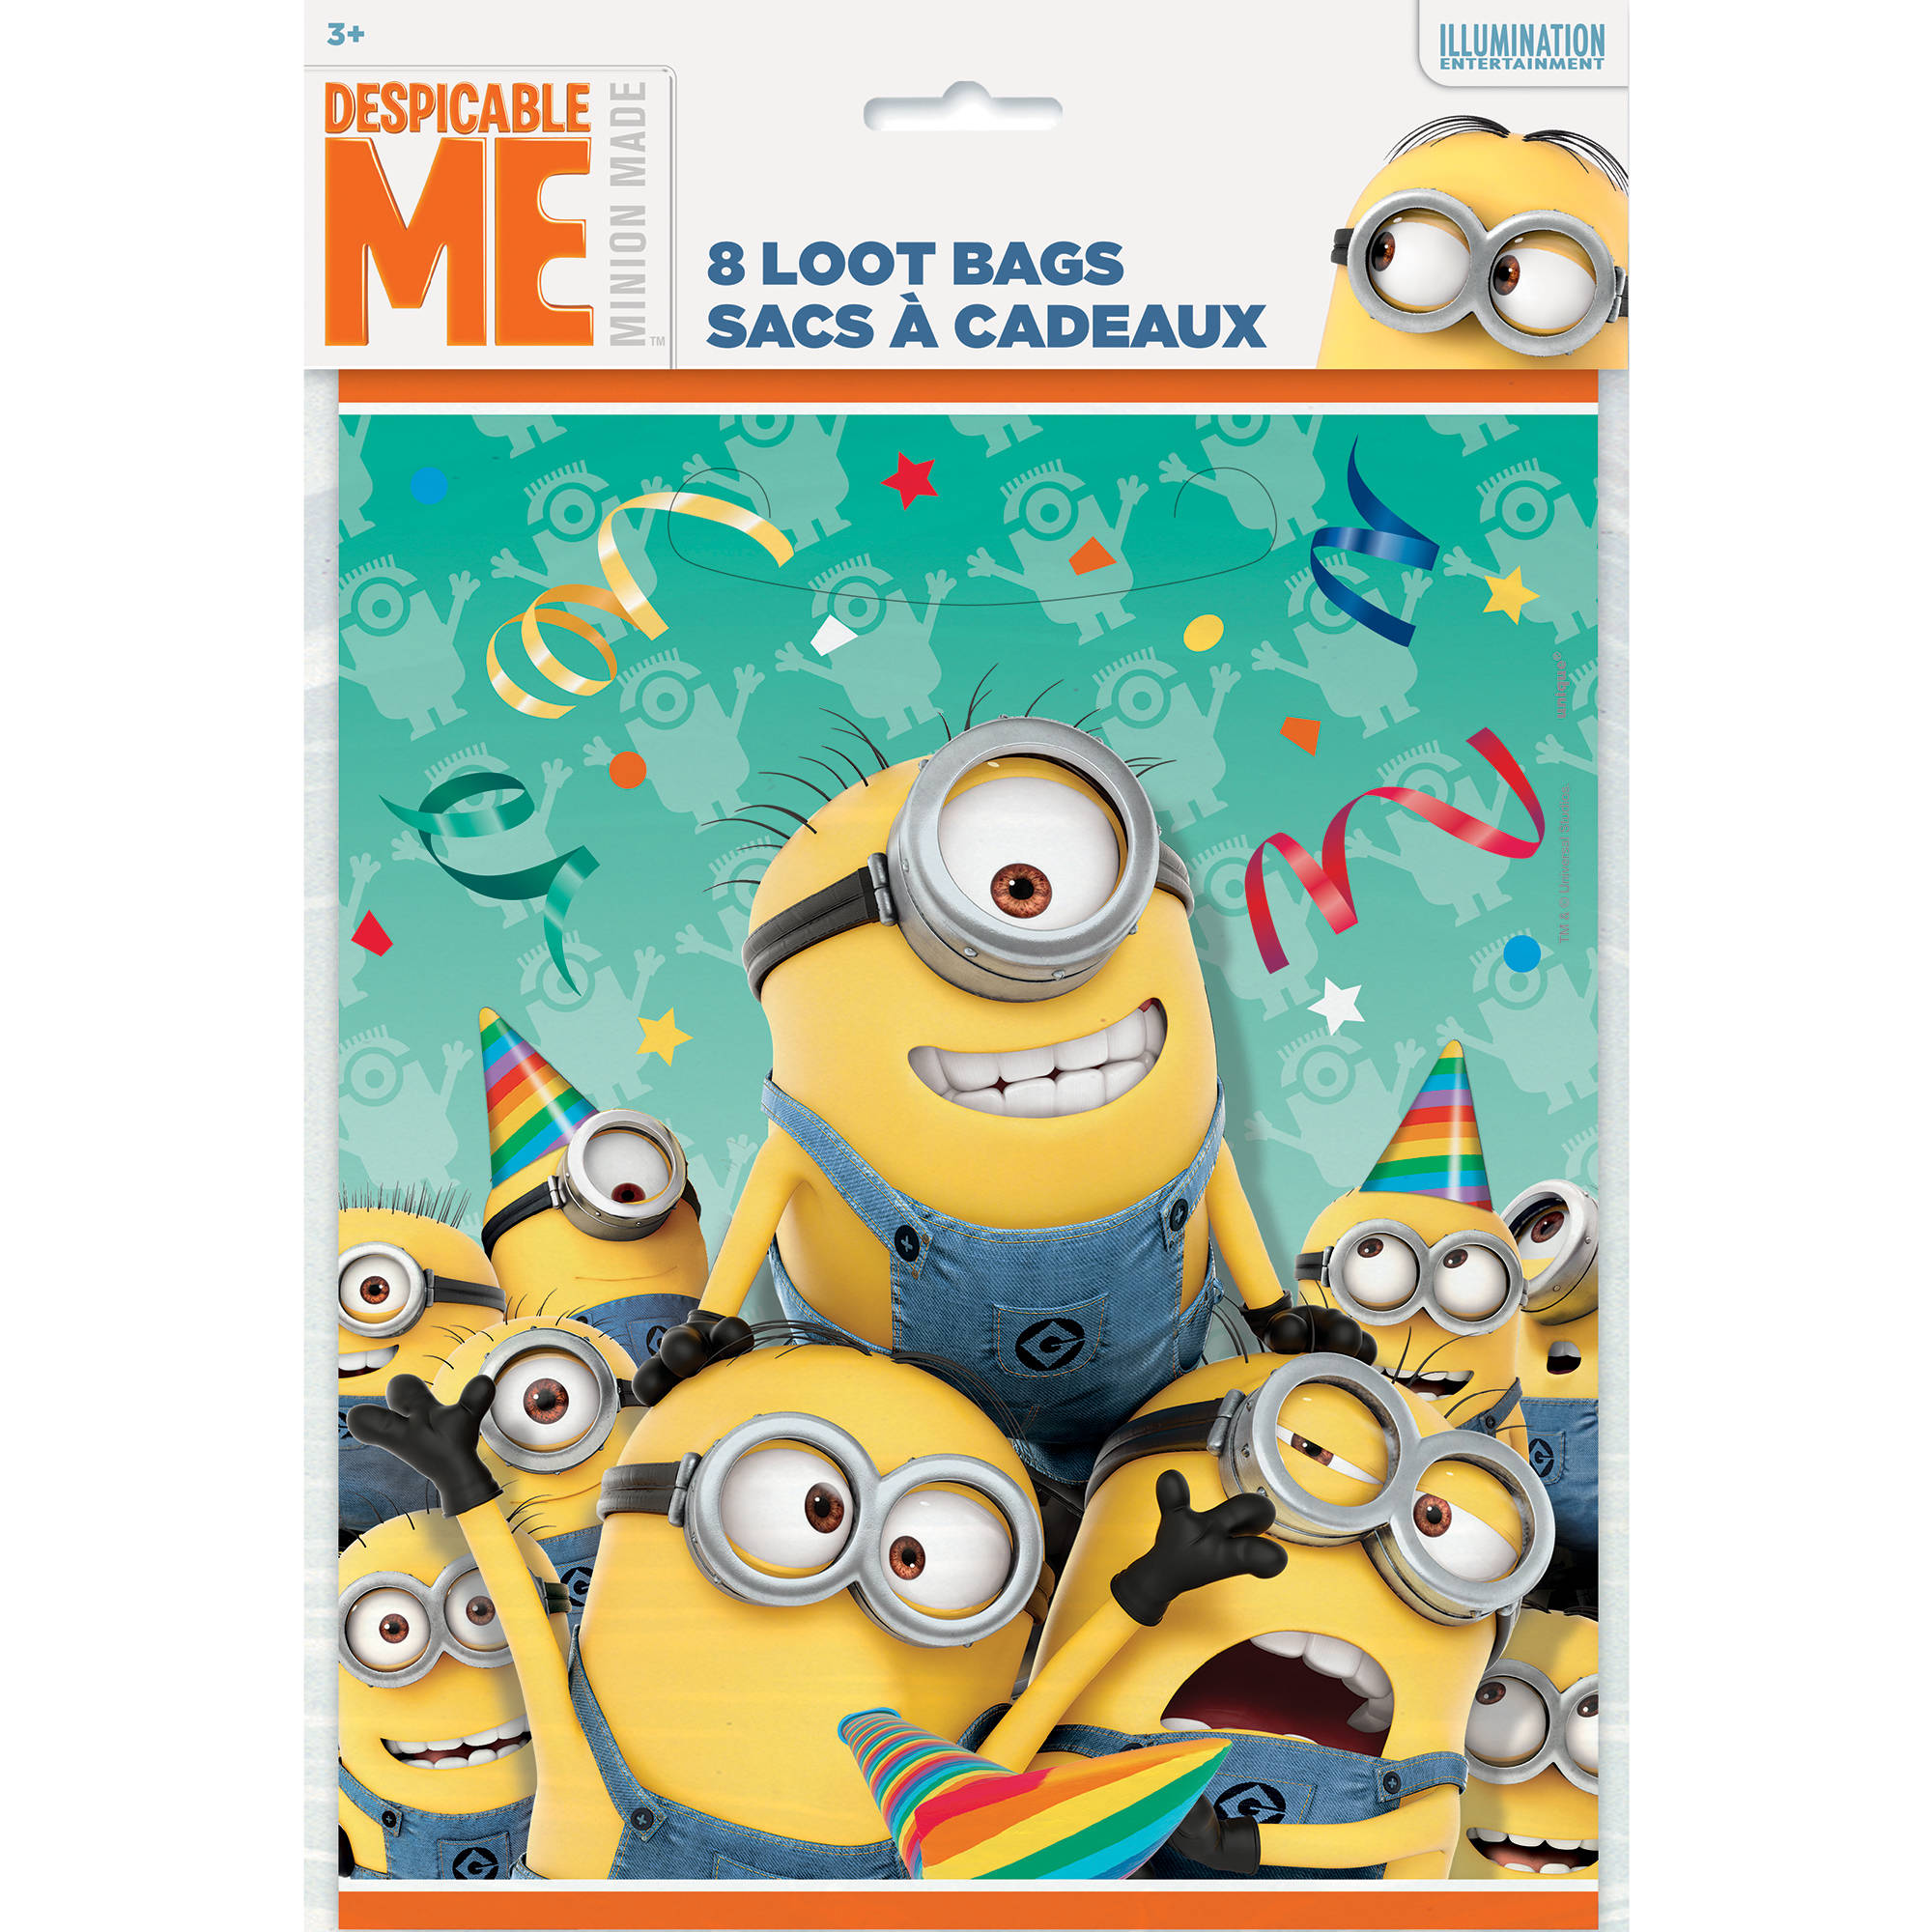 Despicable Me Minions Favor Bags, 8ct